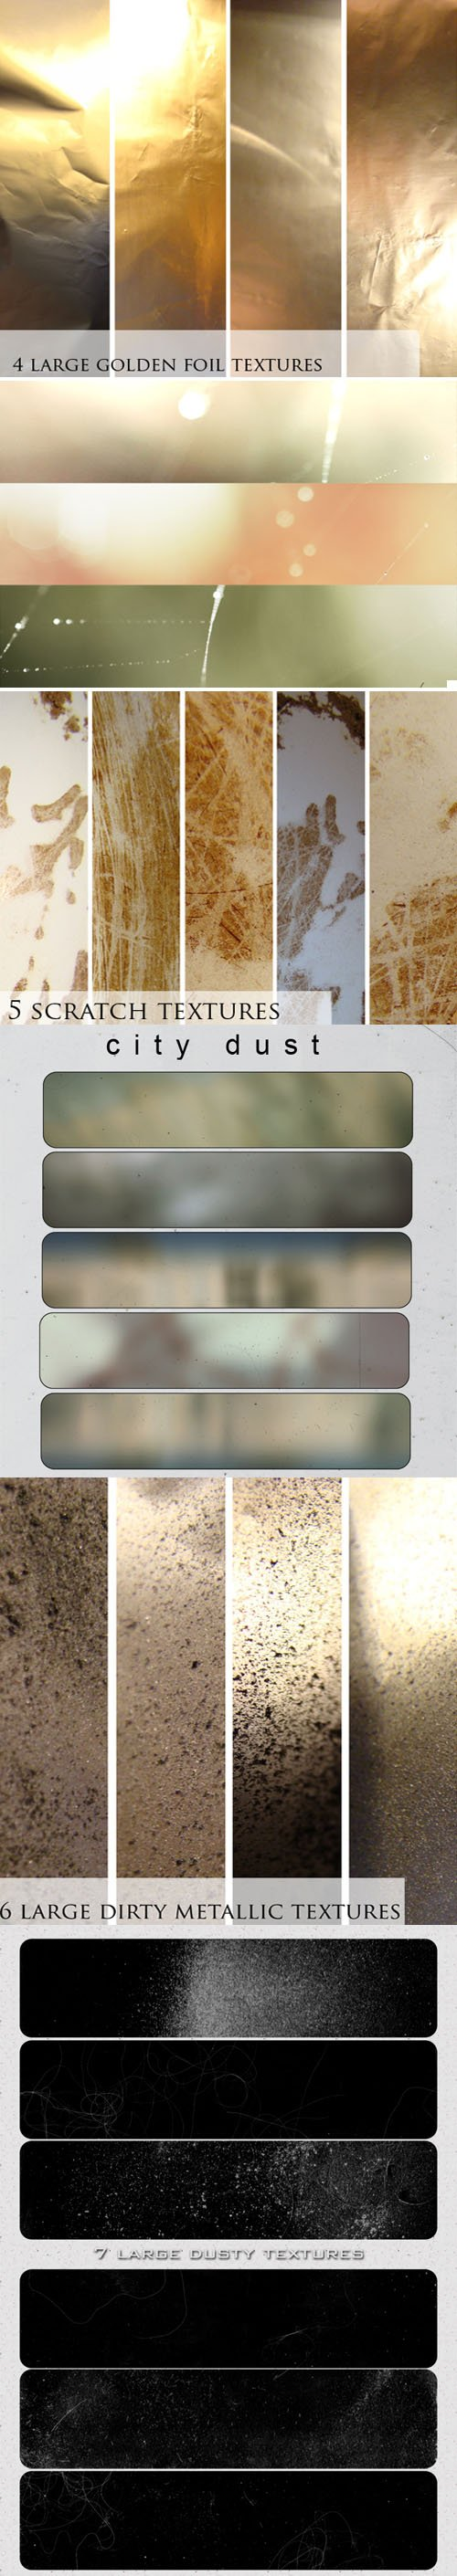 70+ Awesome Pack of Textures & Backgrounds